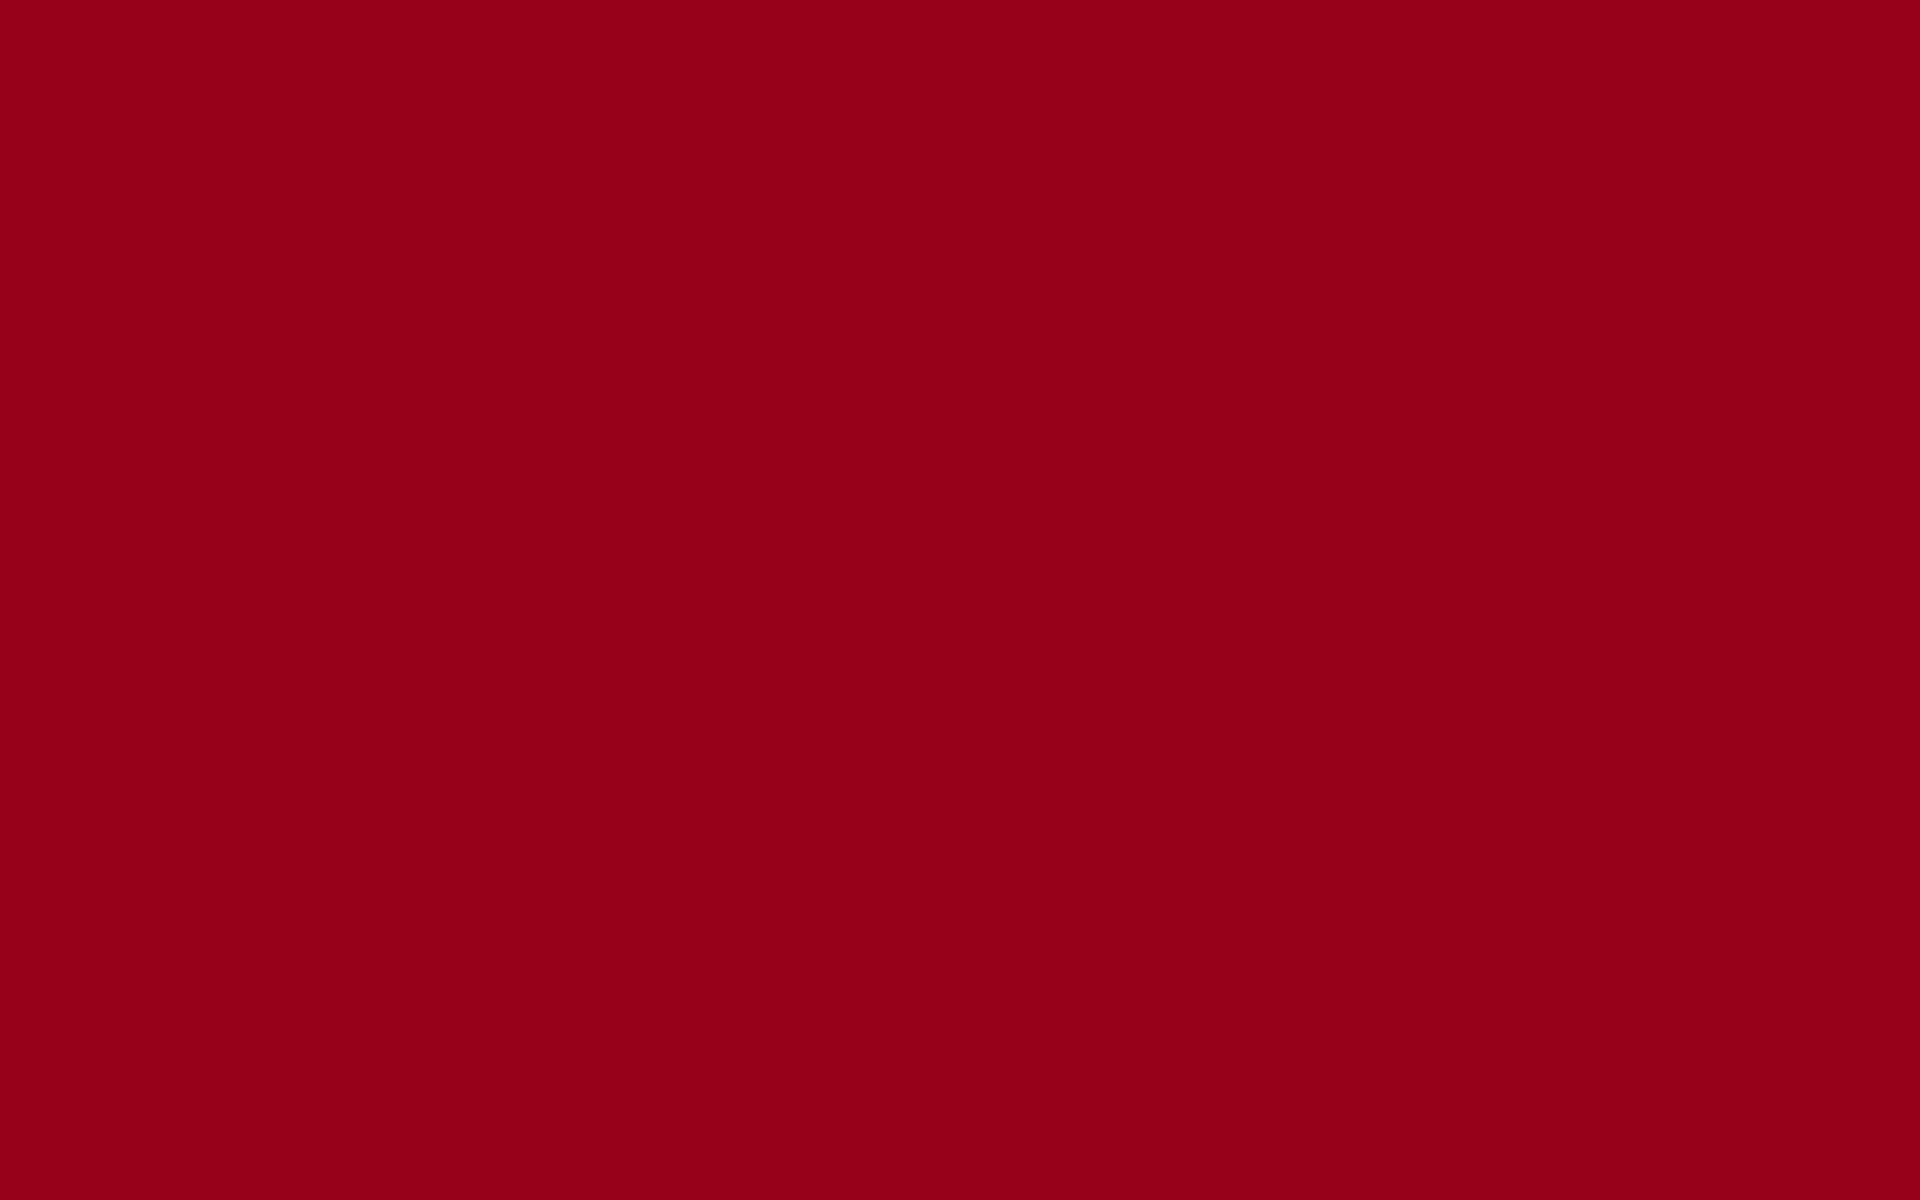 1920x1200 Carmine Solid Color Background